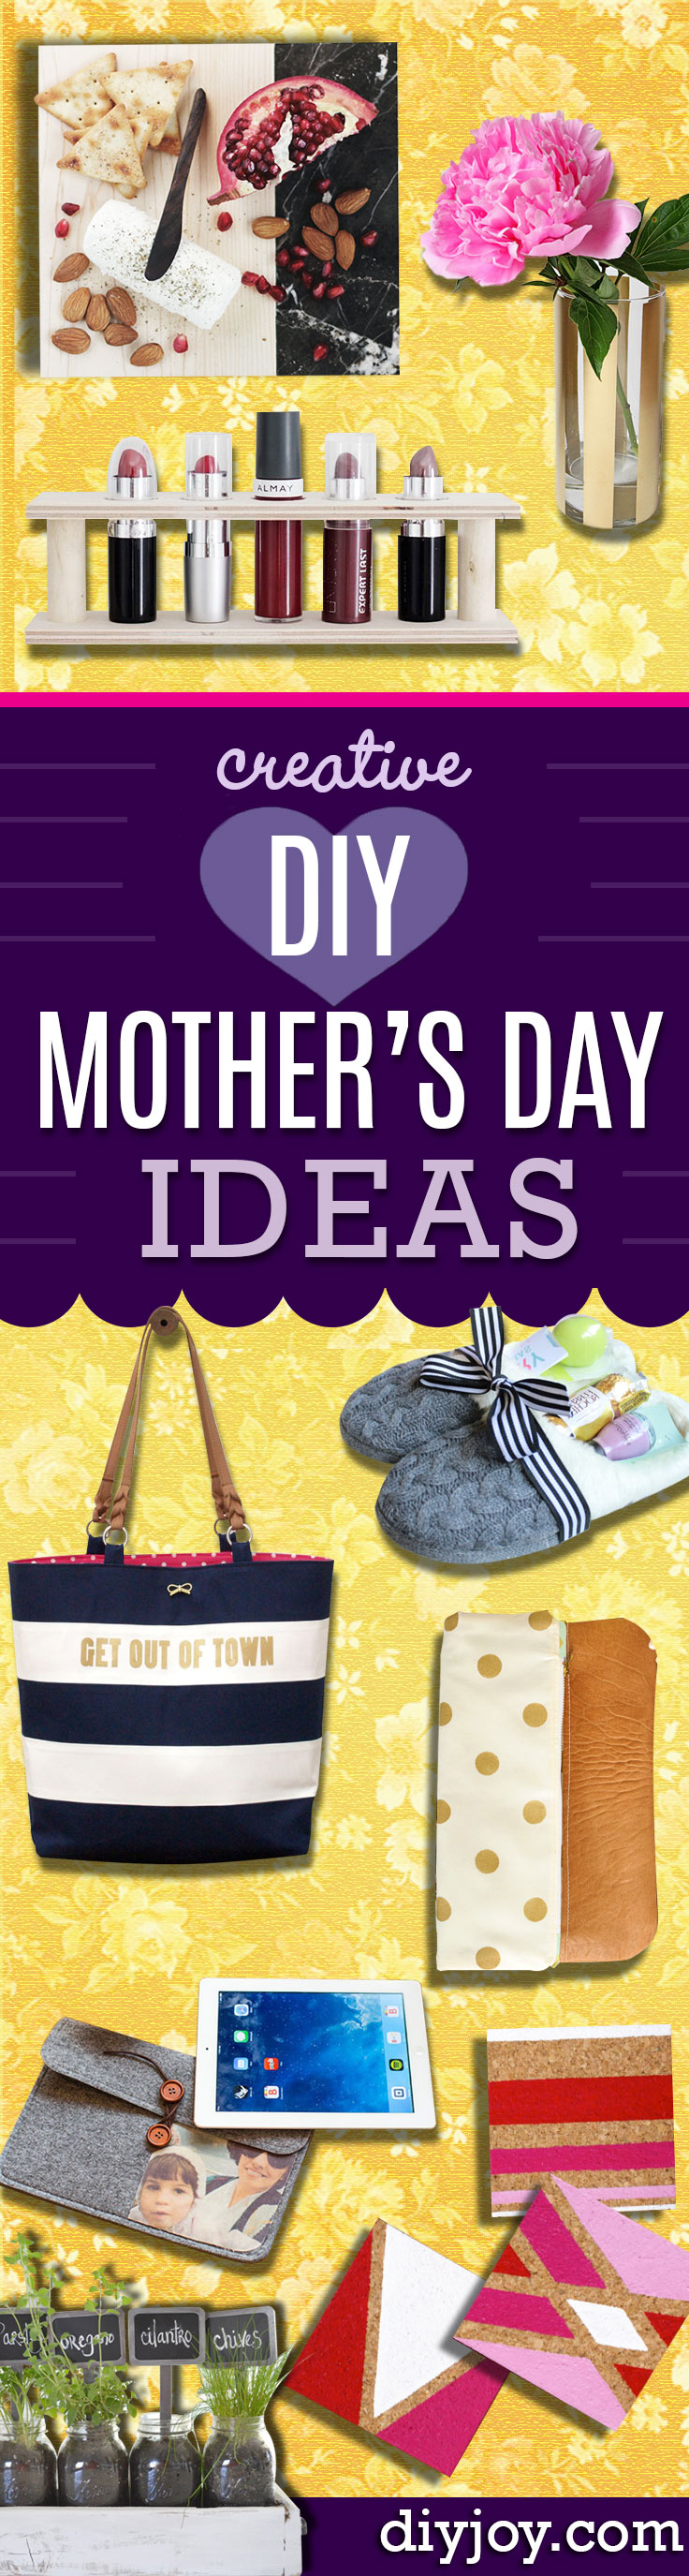 Creative DIY Mothers Day Gifts Ideas - Handmade Ideas from Daughter, Son, Kids, Teens or Baby - Unique, Easy, Cheap Do It Yourself Crafts To Make for Mothers Day, complete with tutorials and instructions